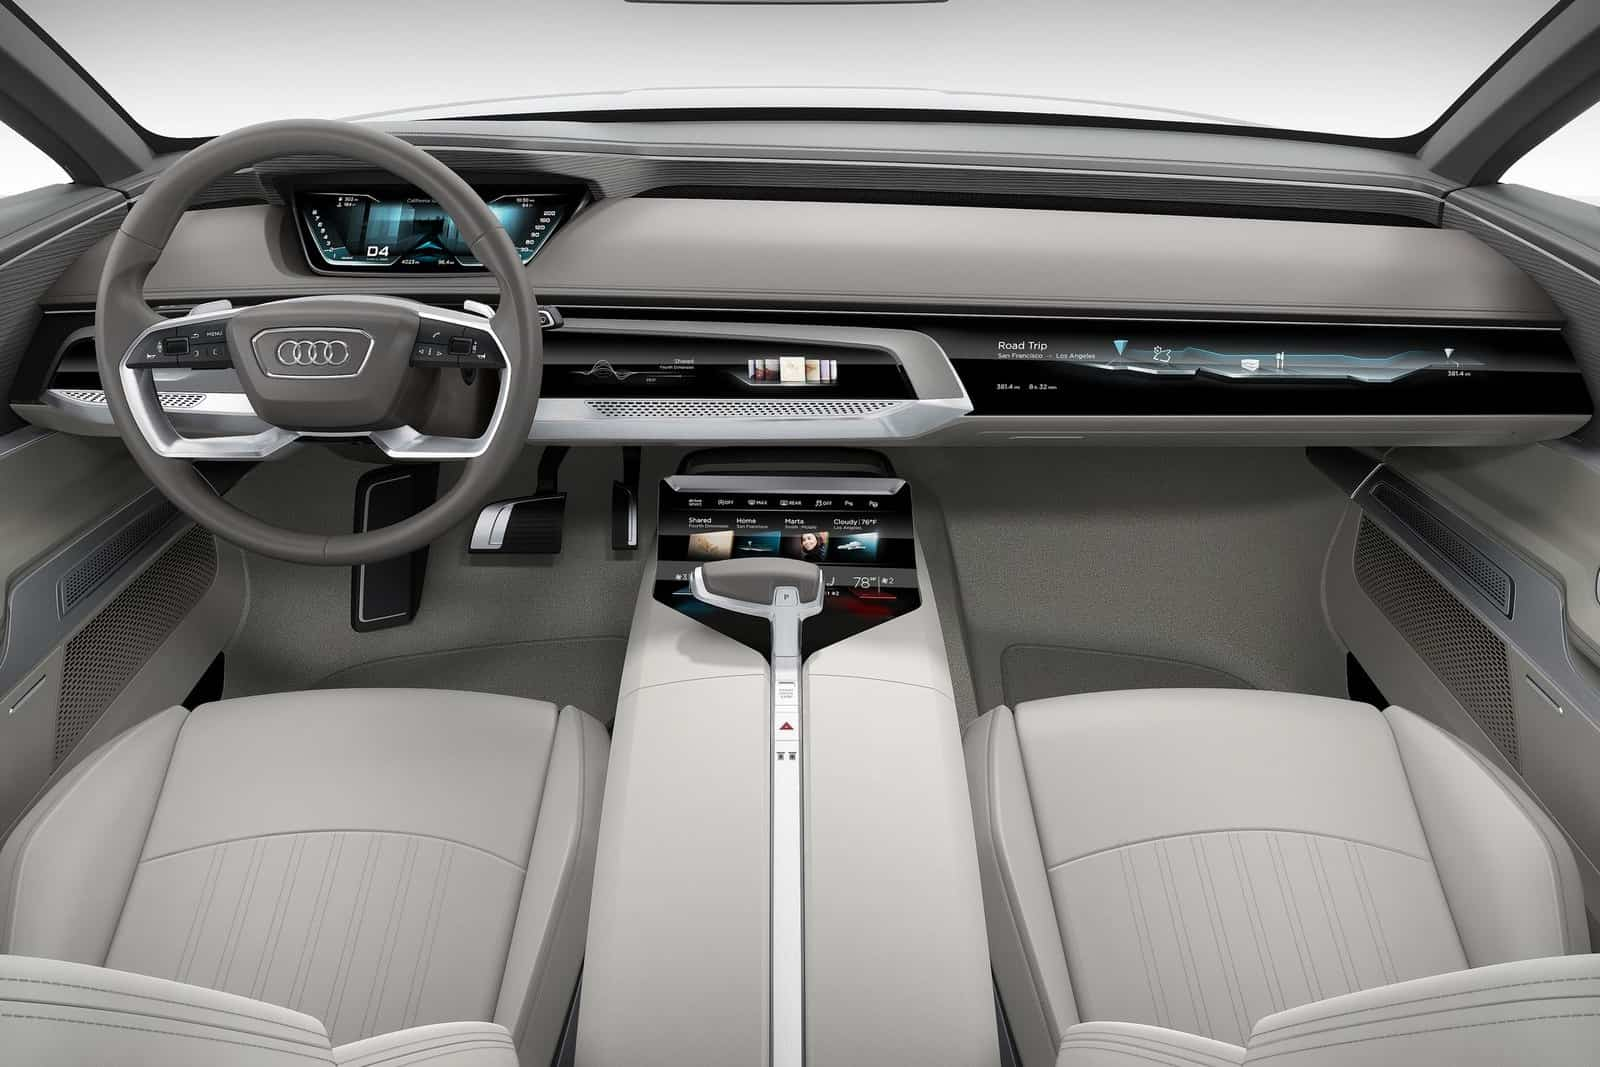 Audi-Prologue_Concept_2014_1600x1200_wallpaper_0b